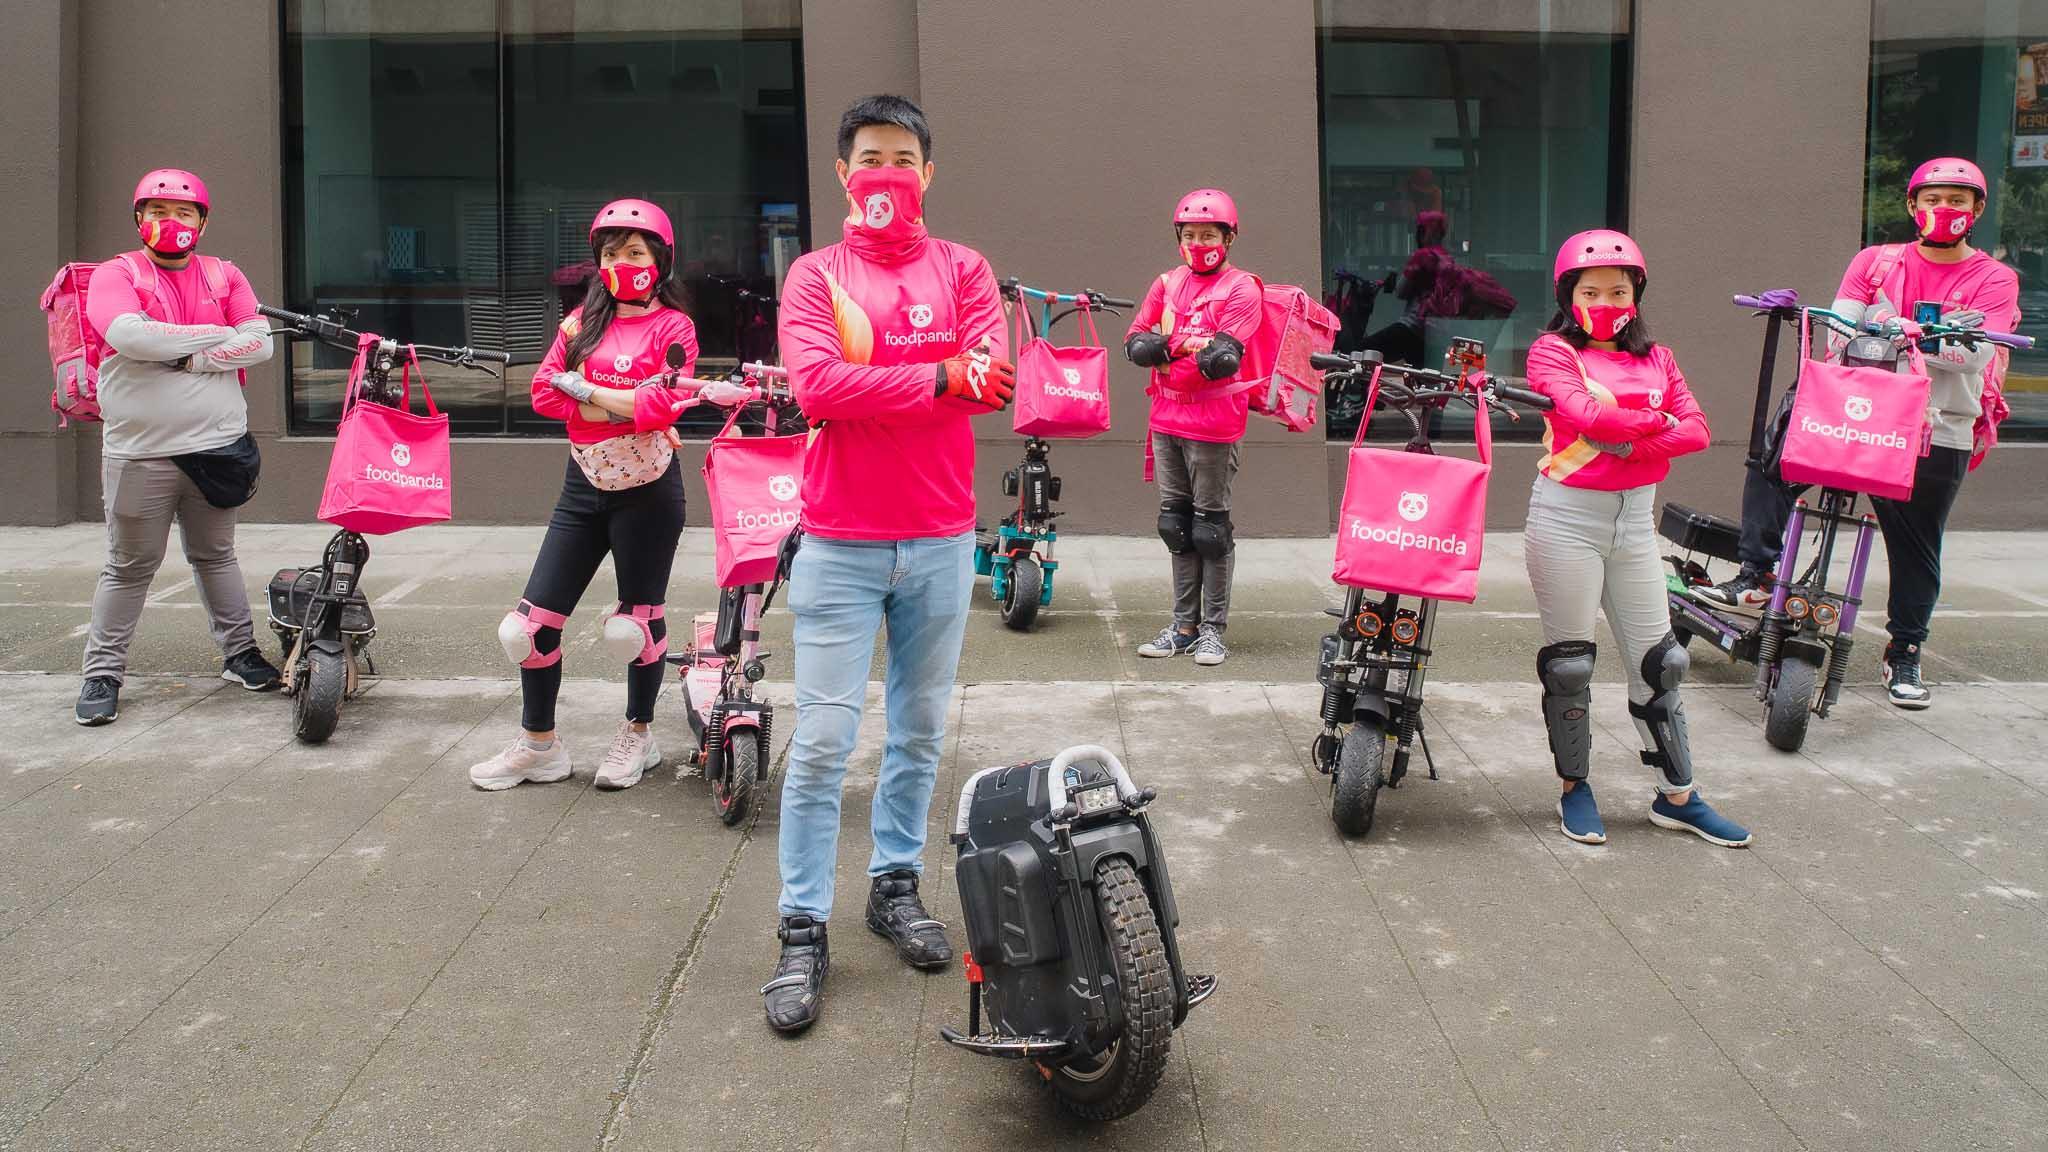 Foodpanda has deployed electric kick scooter riders to be part of its delivery teams in Makati and Bonifacio Global City